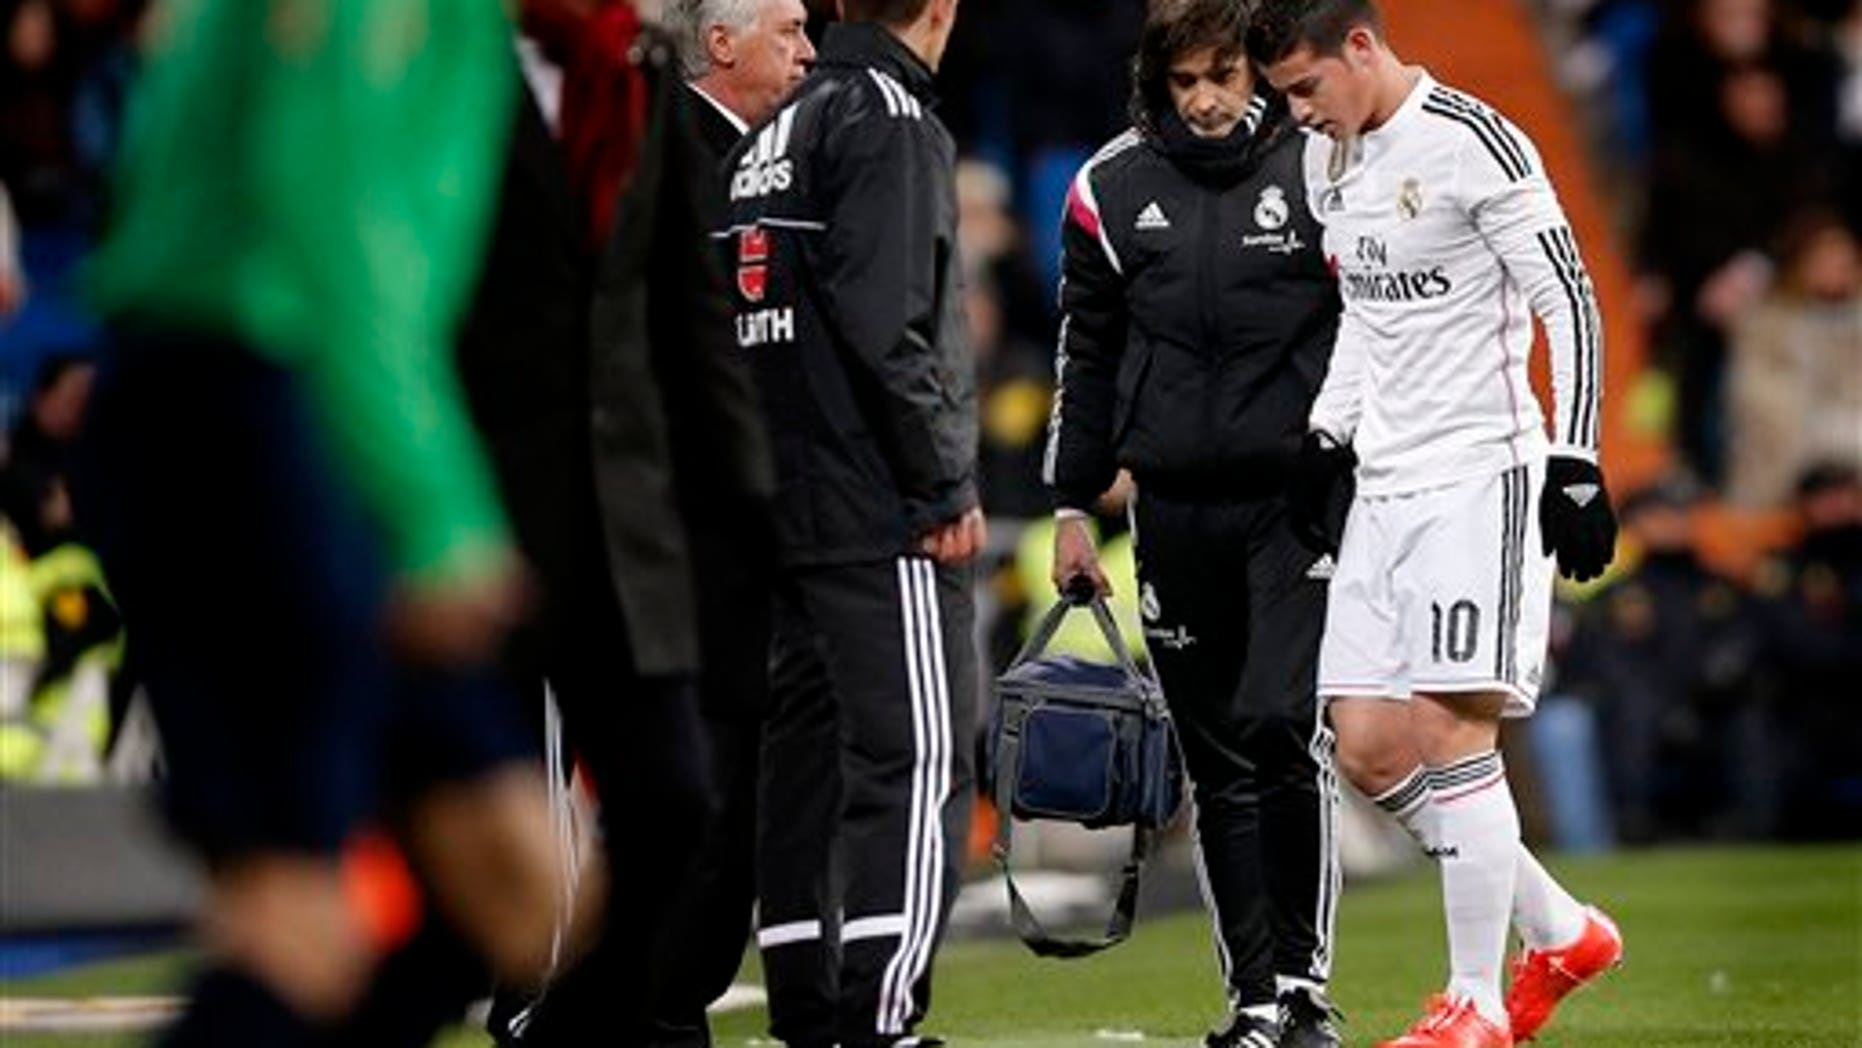 In this Feb. 4, 2015 picture James Rodriguez from Colombia, right, leaves the field injured during a La Liga soccer match between Real Madrid and Sevilla at the Santiago Bernabeu stadium in Madrid, Spain. James Rodriguez will get surgery on his right foot after Real Madrid confirmed a broken a metatarsal bone, who could be out for two or three months. (AP Photo/Daniel Ochoa de Olza)